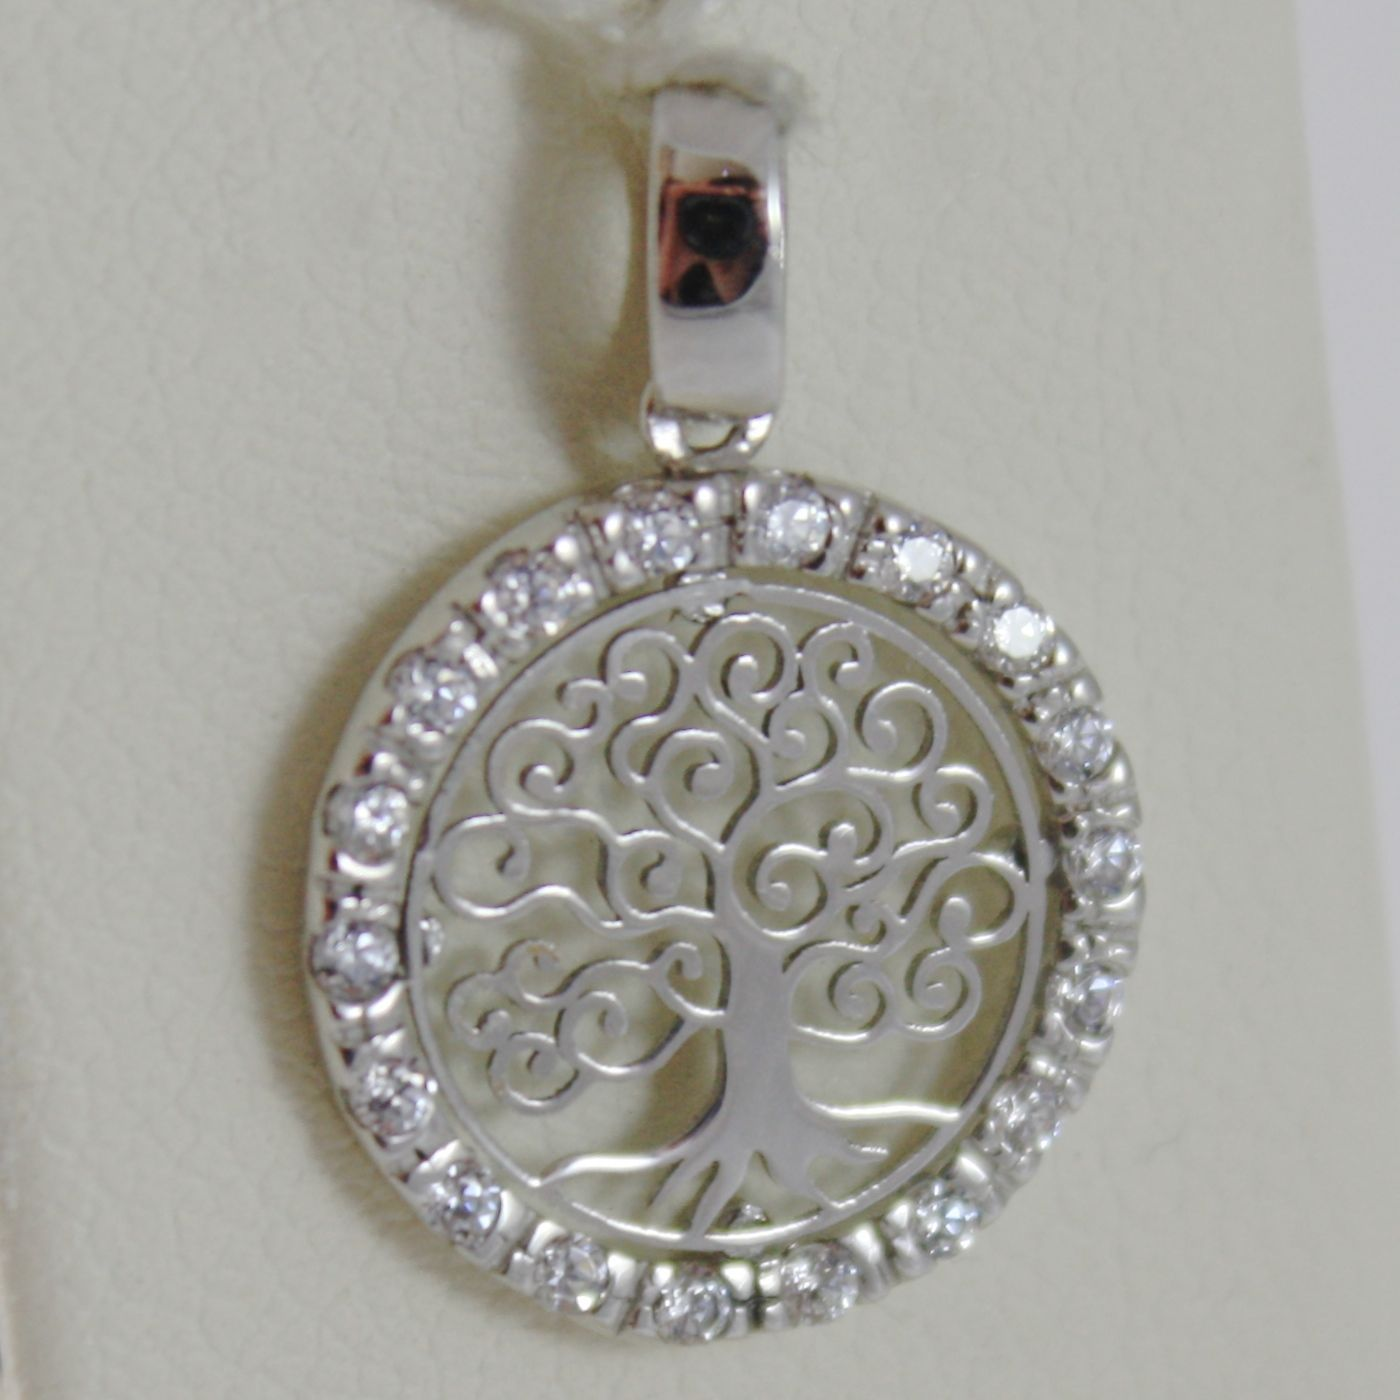 18K WHITE GOLD MINI TREE OF LIFE PENDANT, 0.55 INCHES, ZIRCONIA, MADE IN ITALY